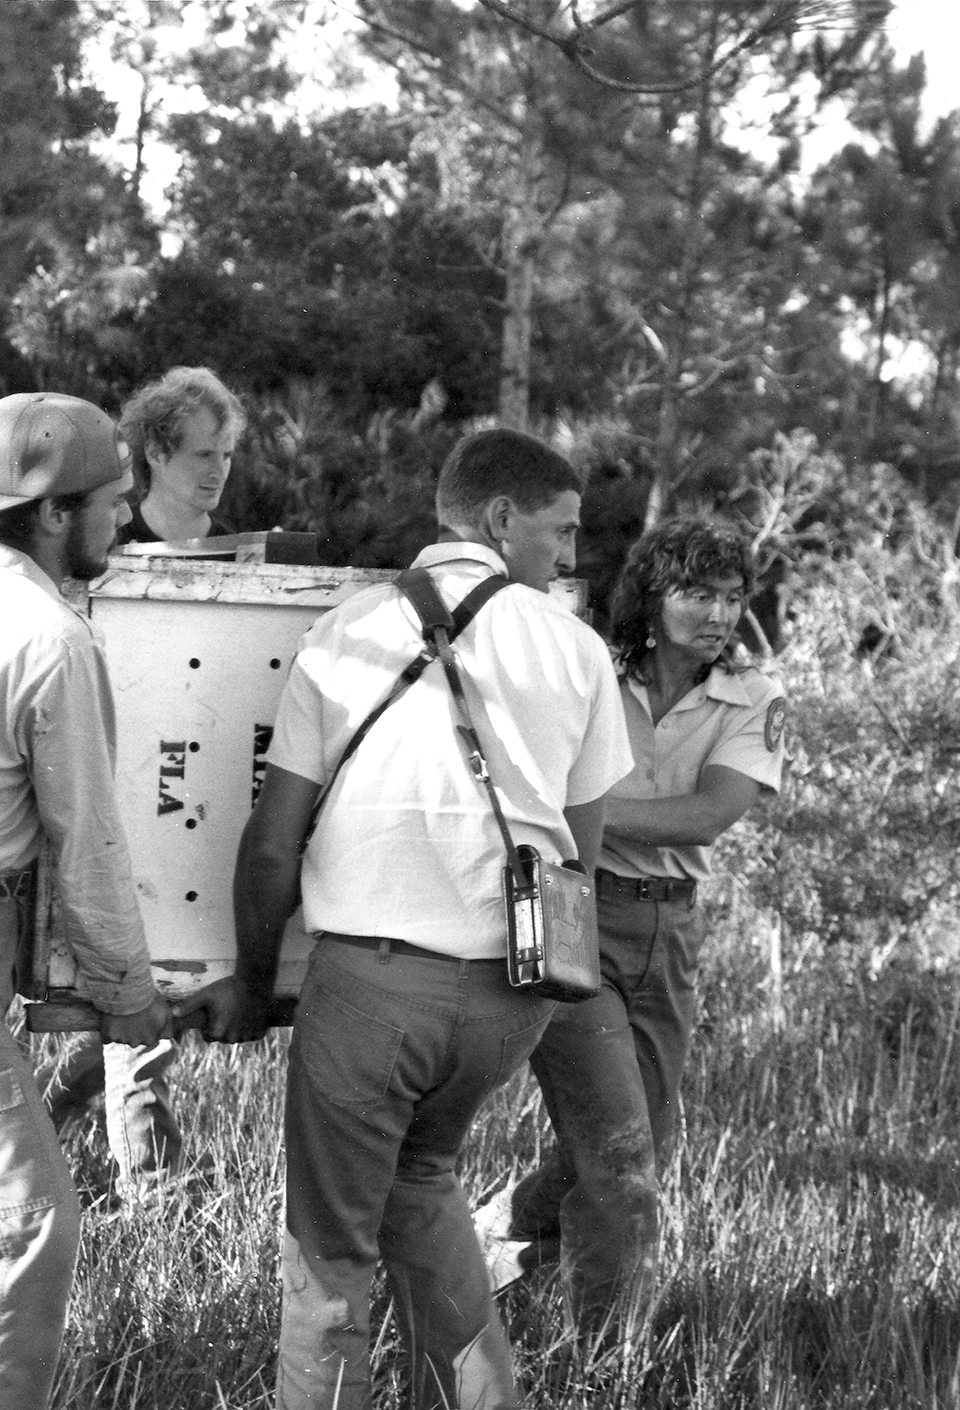 Roelke and her team preparing to release a panther in 1987; Photograph by Florida Game and Fish Commission